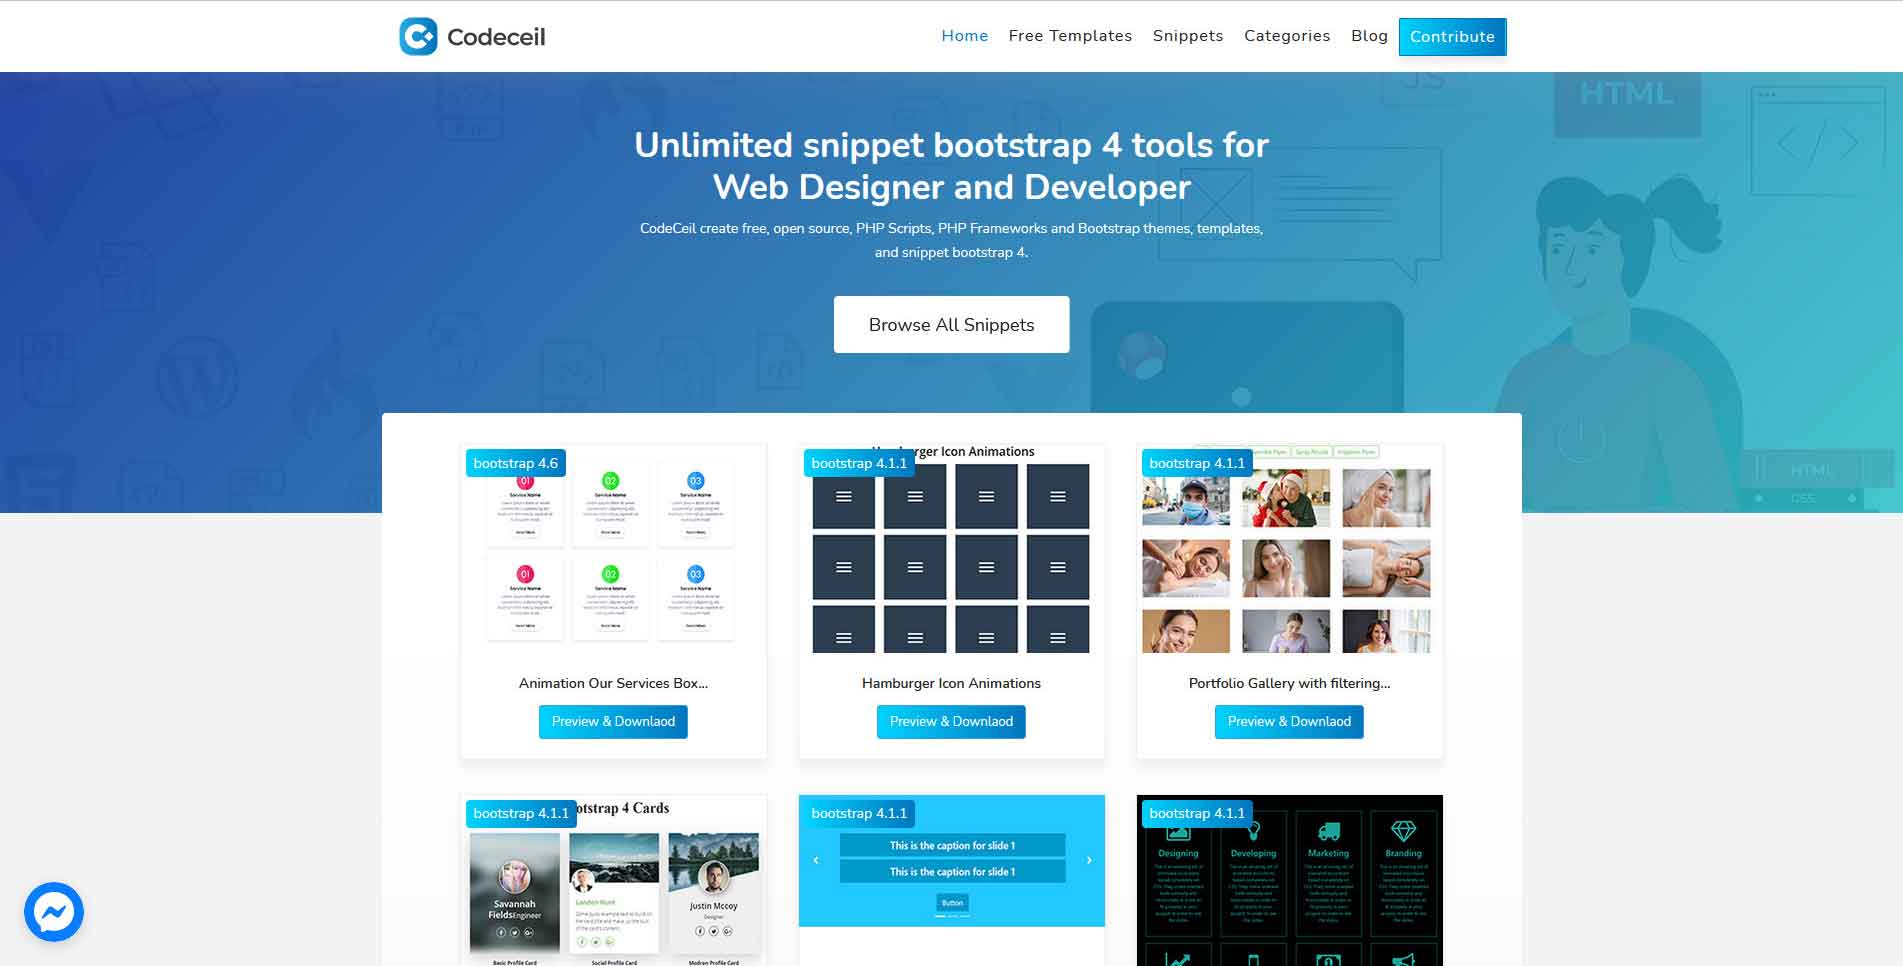 8 Useful Code Sharing Websites for Web Developers and Designers in 2021